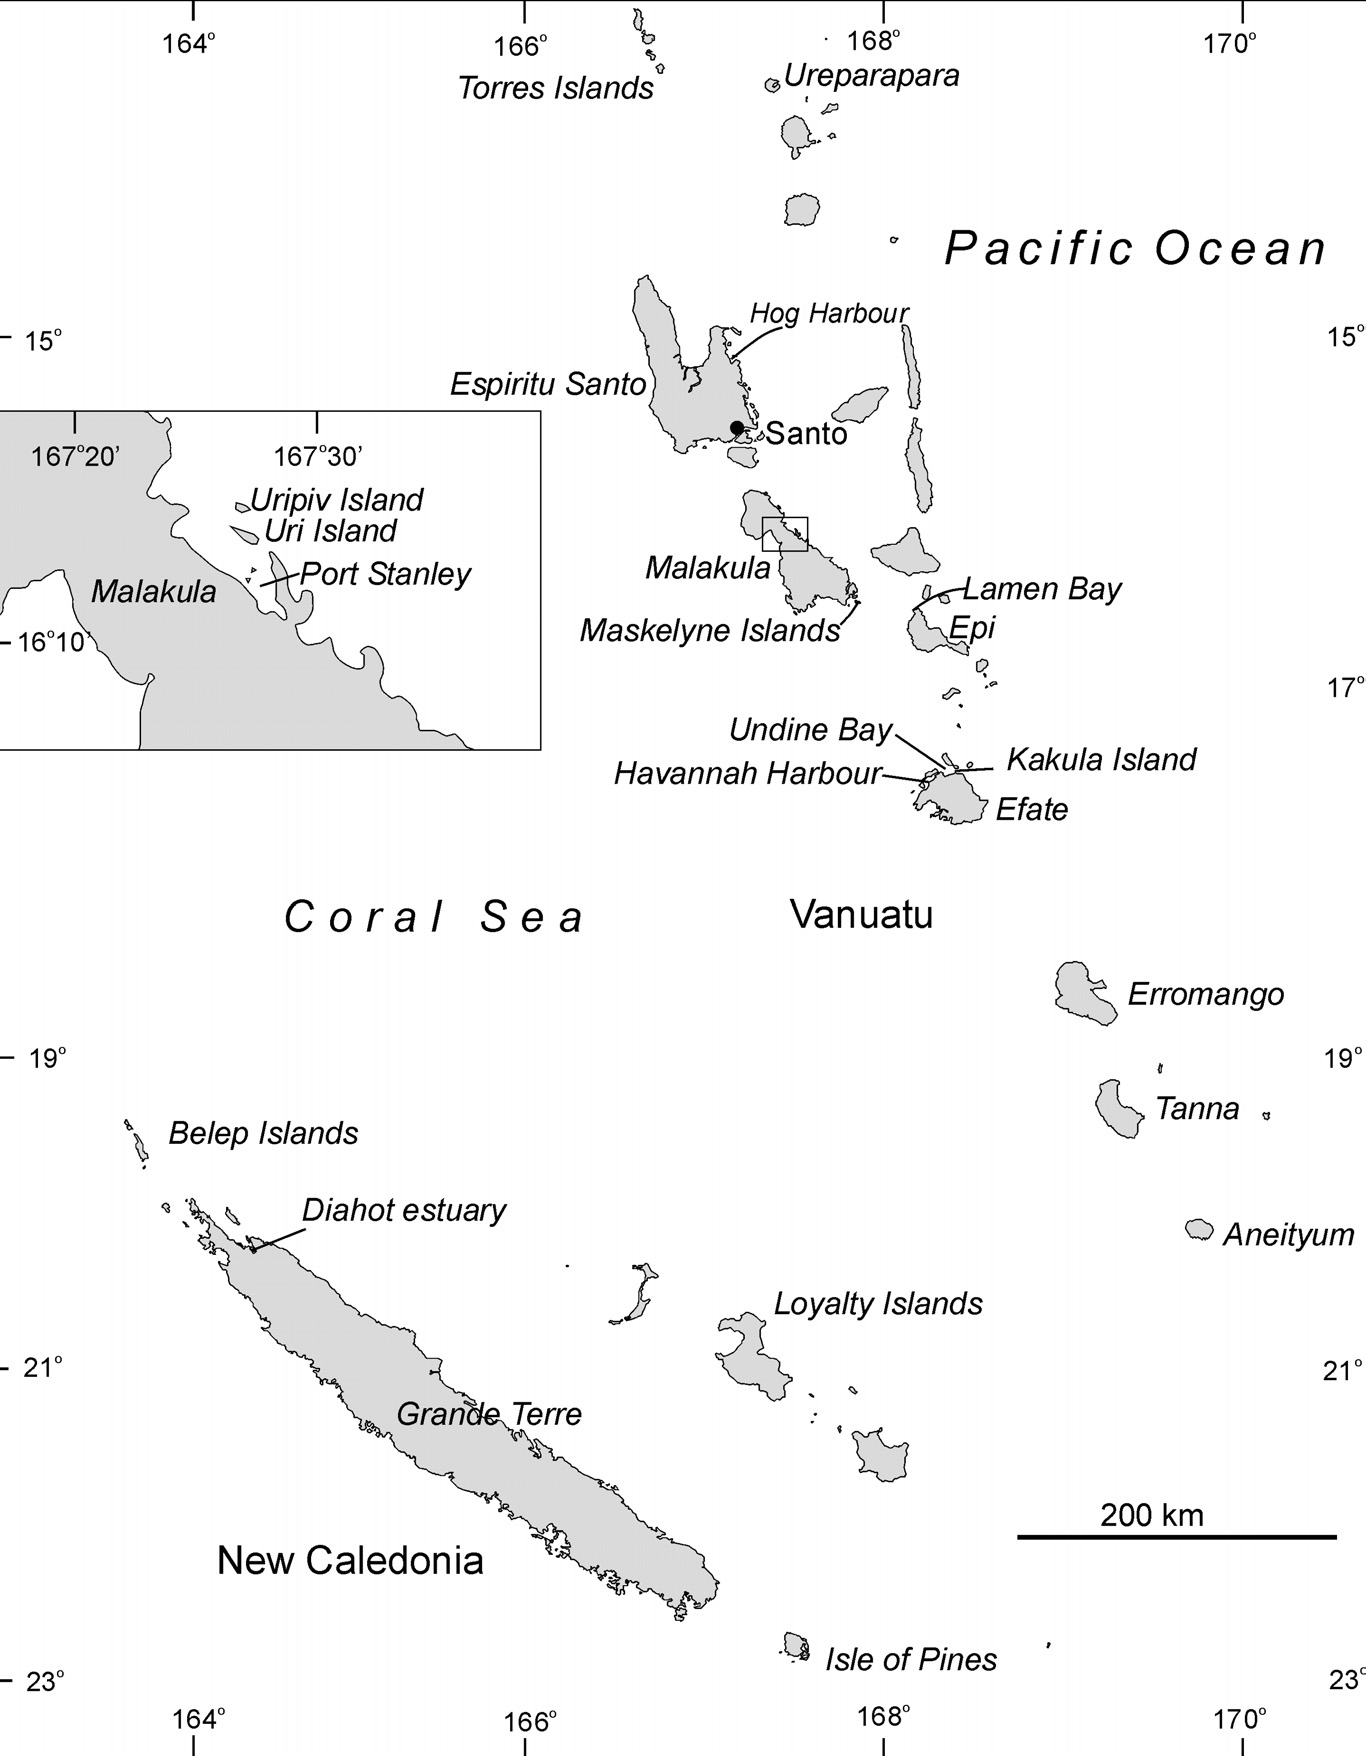 Figure 5.6 The New Caledonia and Vanuatu region showing place names mentioned in the text. fringing reefs.